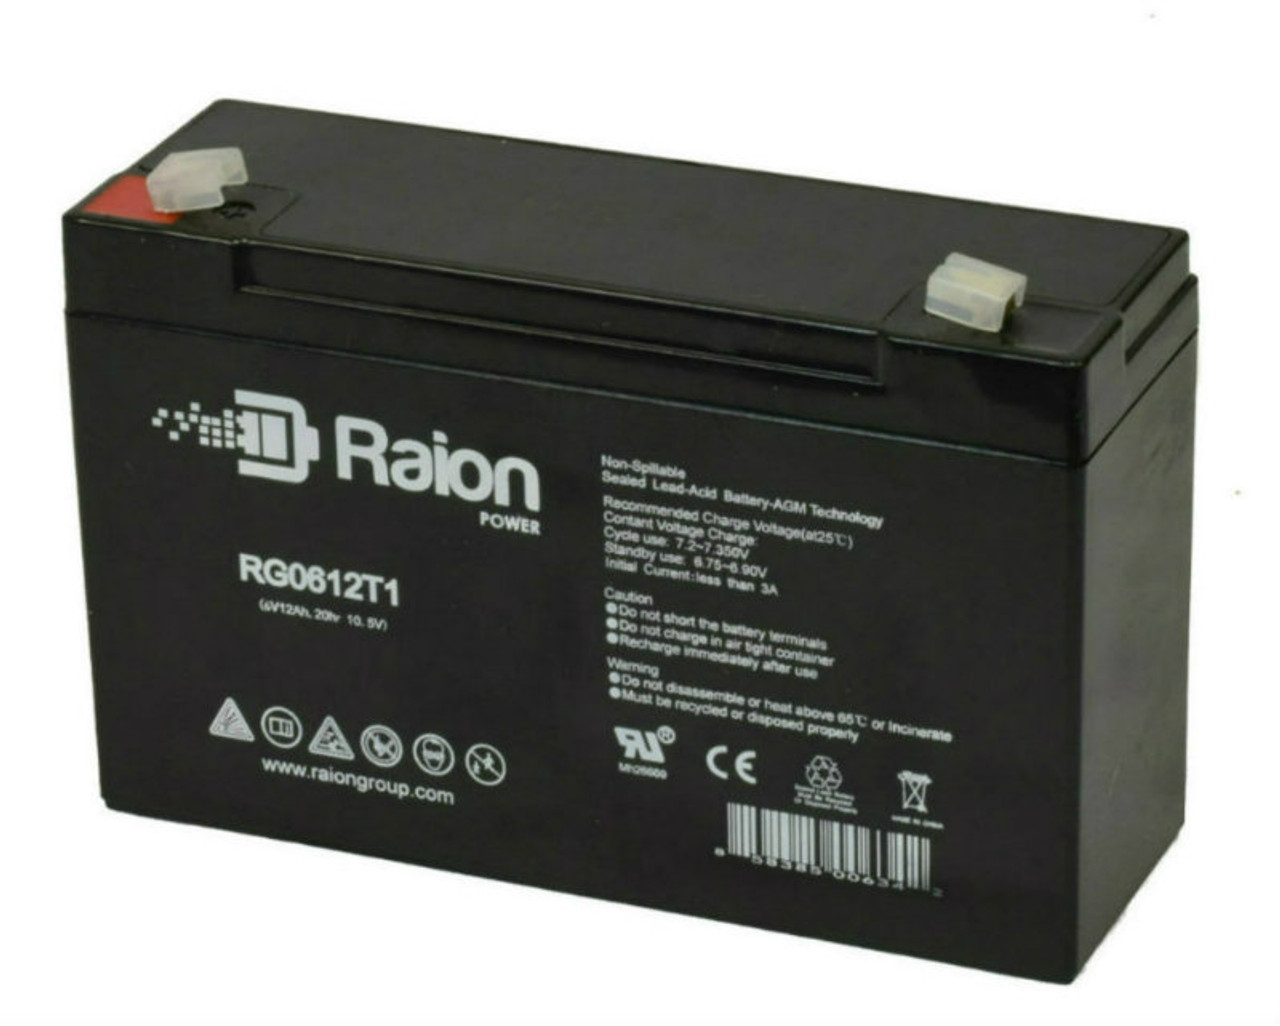 Raion Power RG06120T1 Replacement Battery Pack for Sentry Lite SCR525EL emergency light